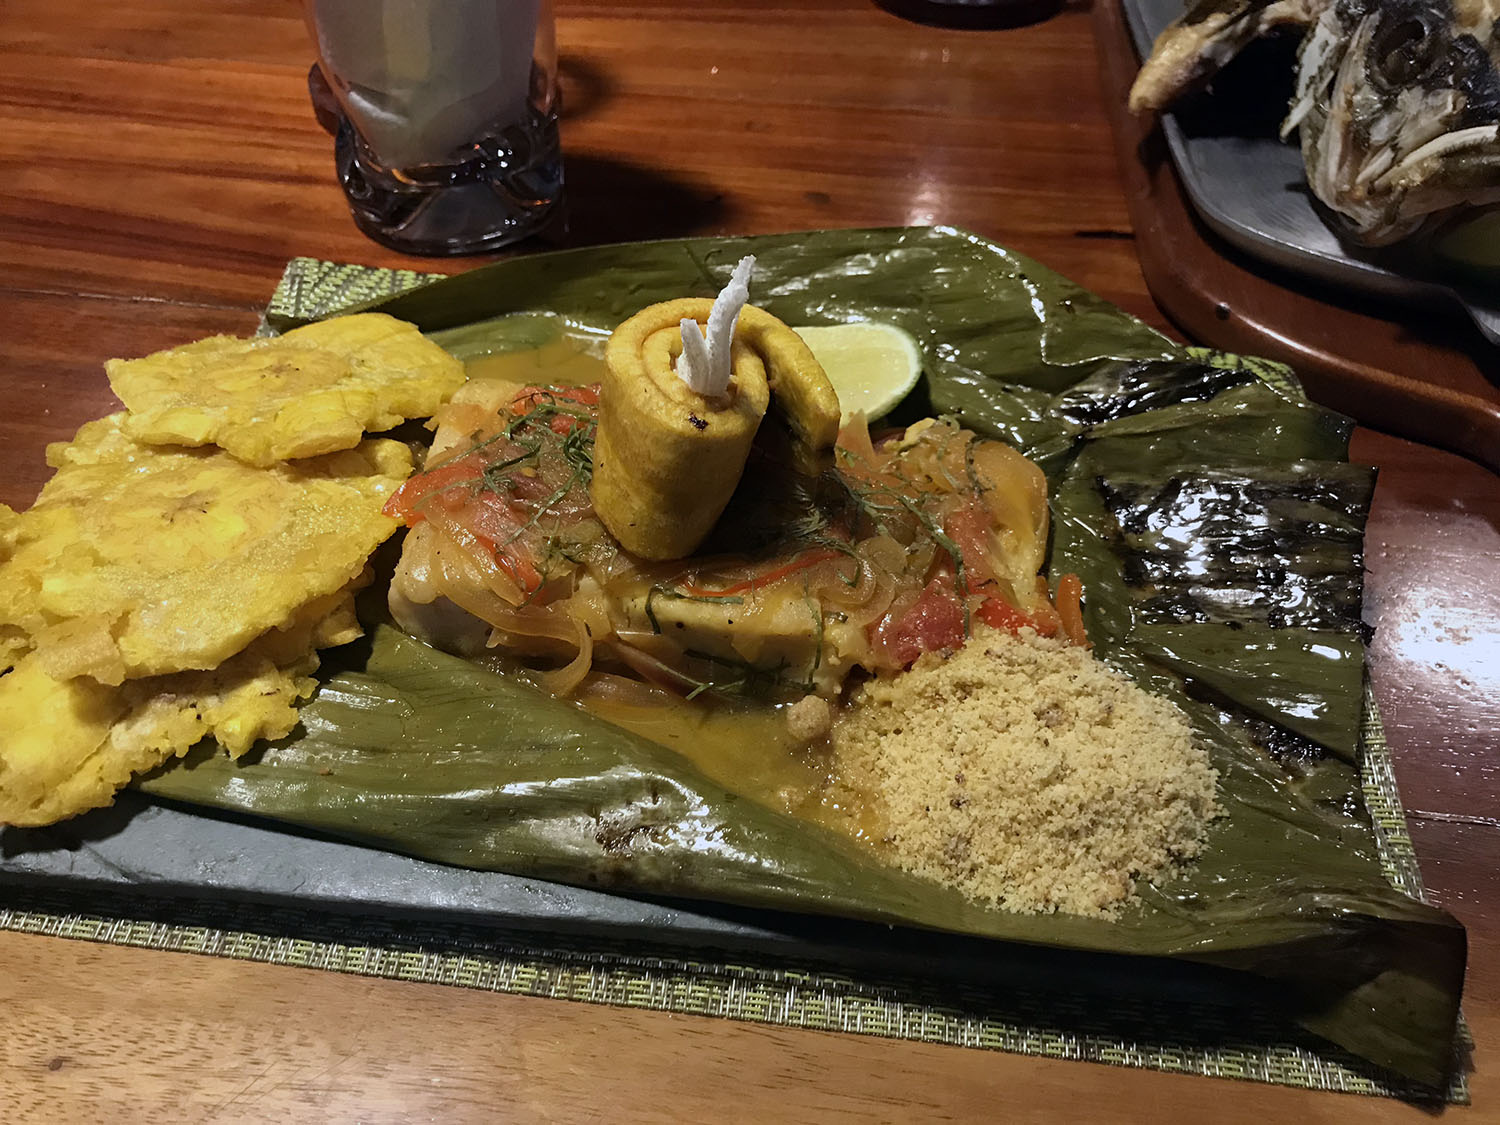 Delicious fish served a banana leaf, with a patacone and sauce on the dish